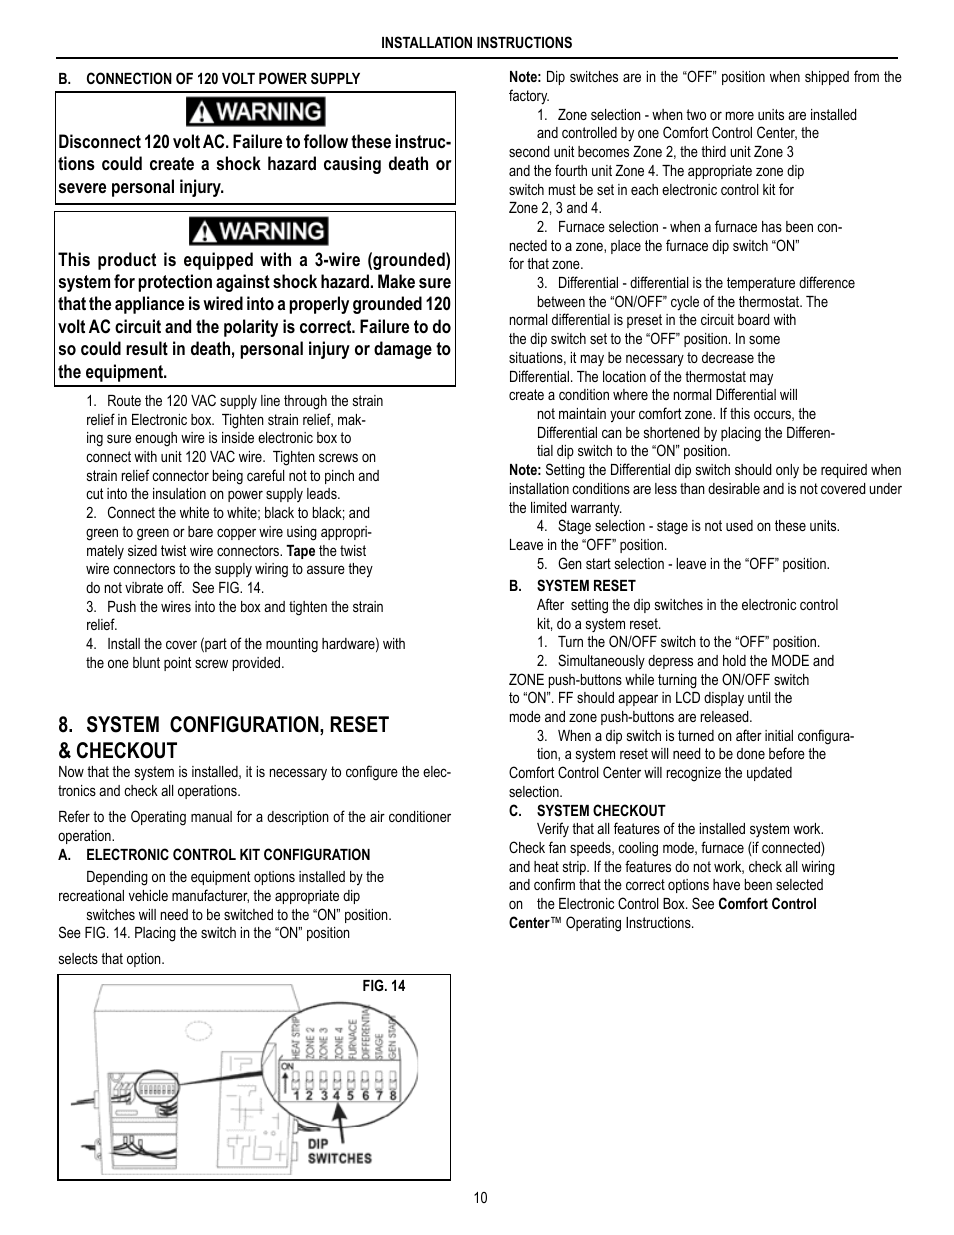 medium resolution of system configuration reset checkout dometic brisk air 590 series user manual page 10 12